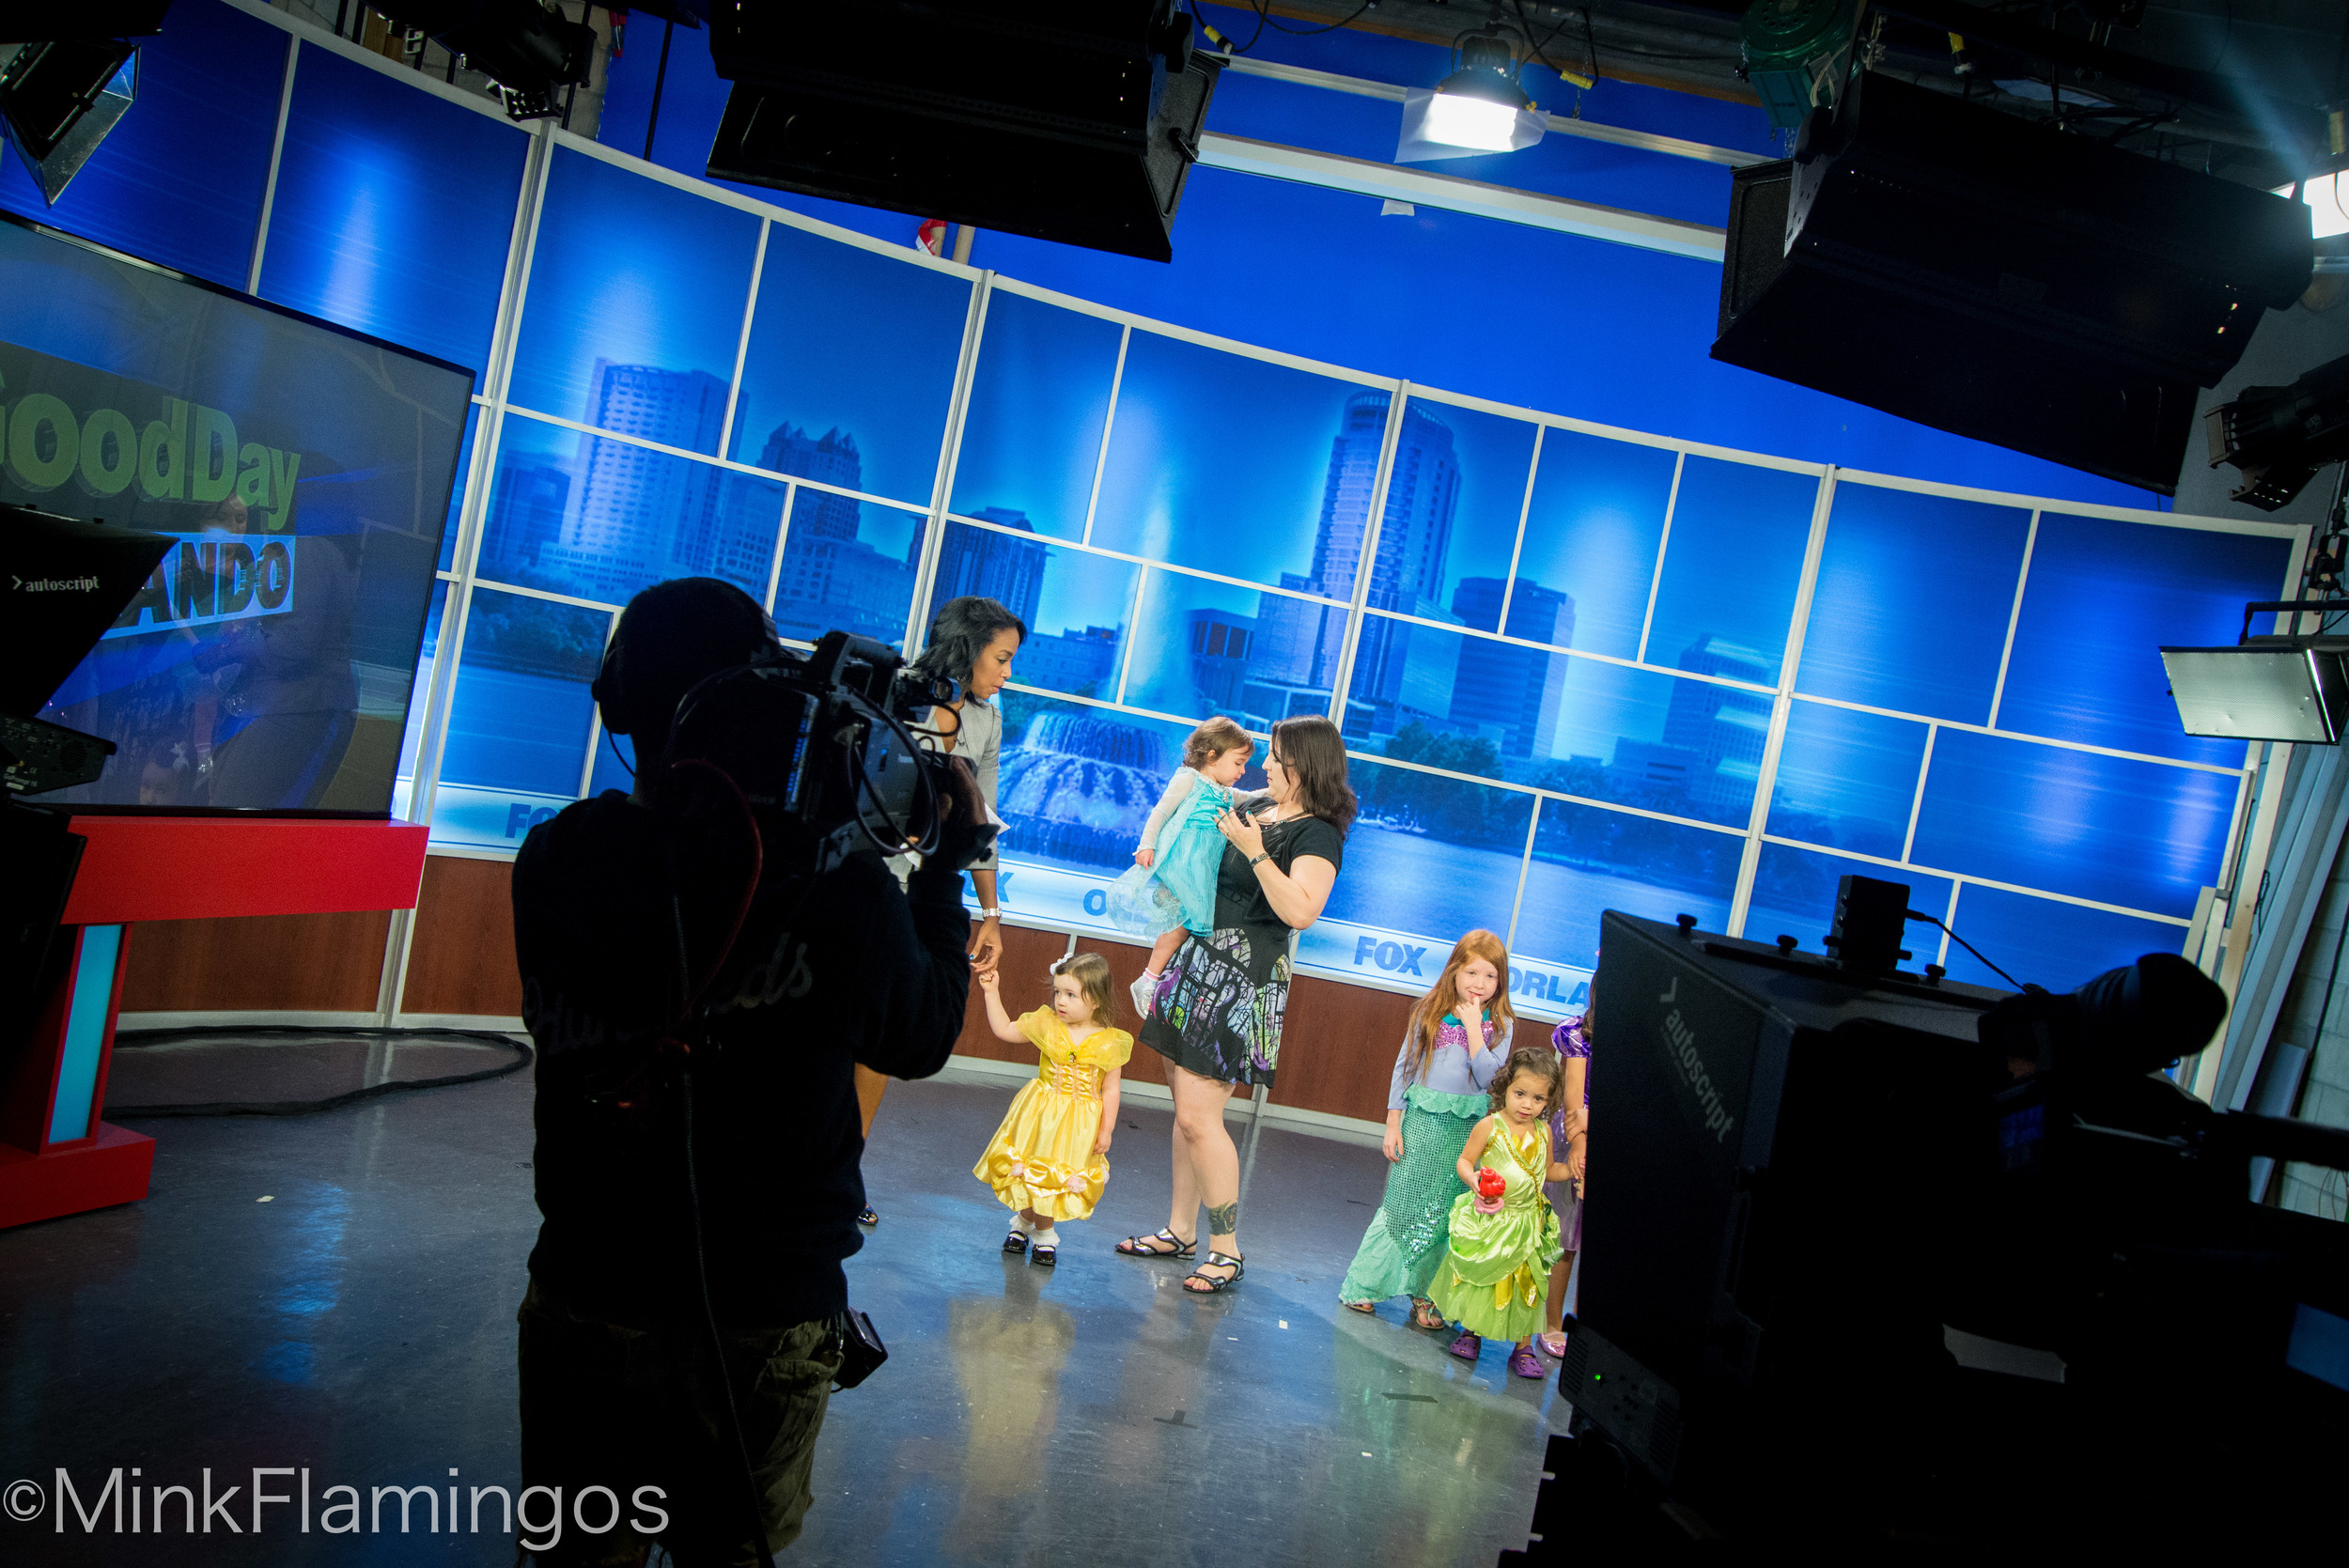 Me, on TV, talking about Disney Heroines, wearing a dress covered in Maleficent's glorious visage